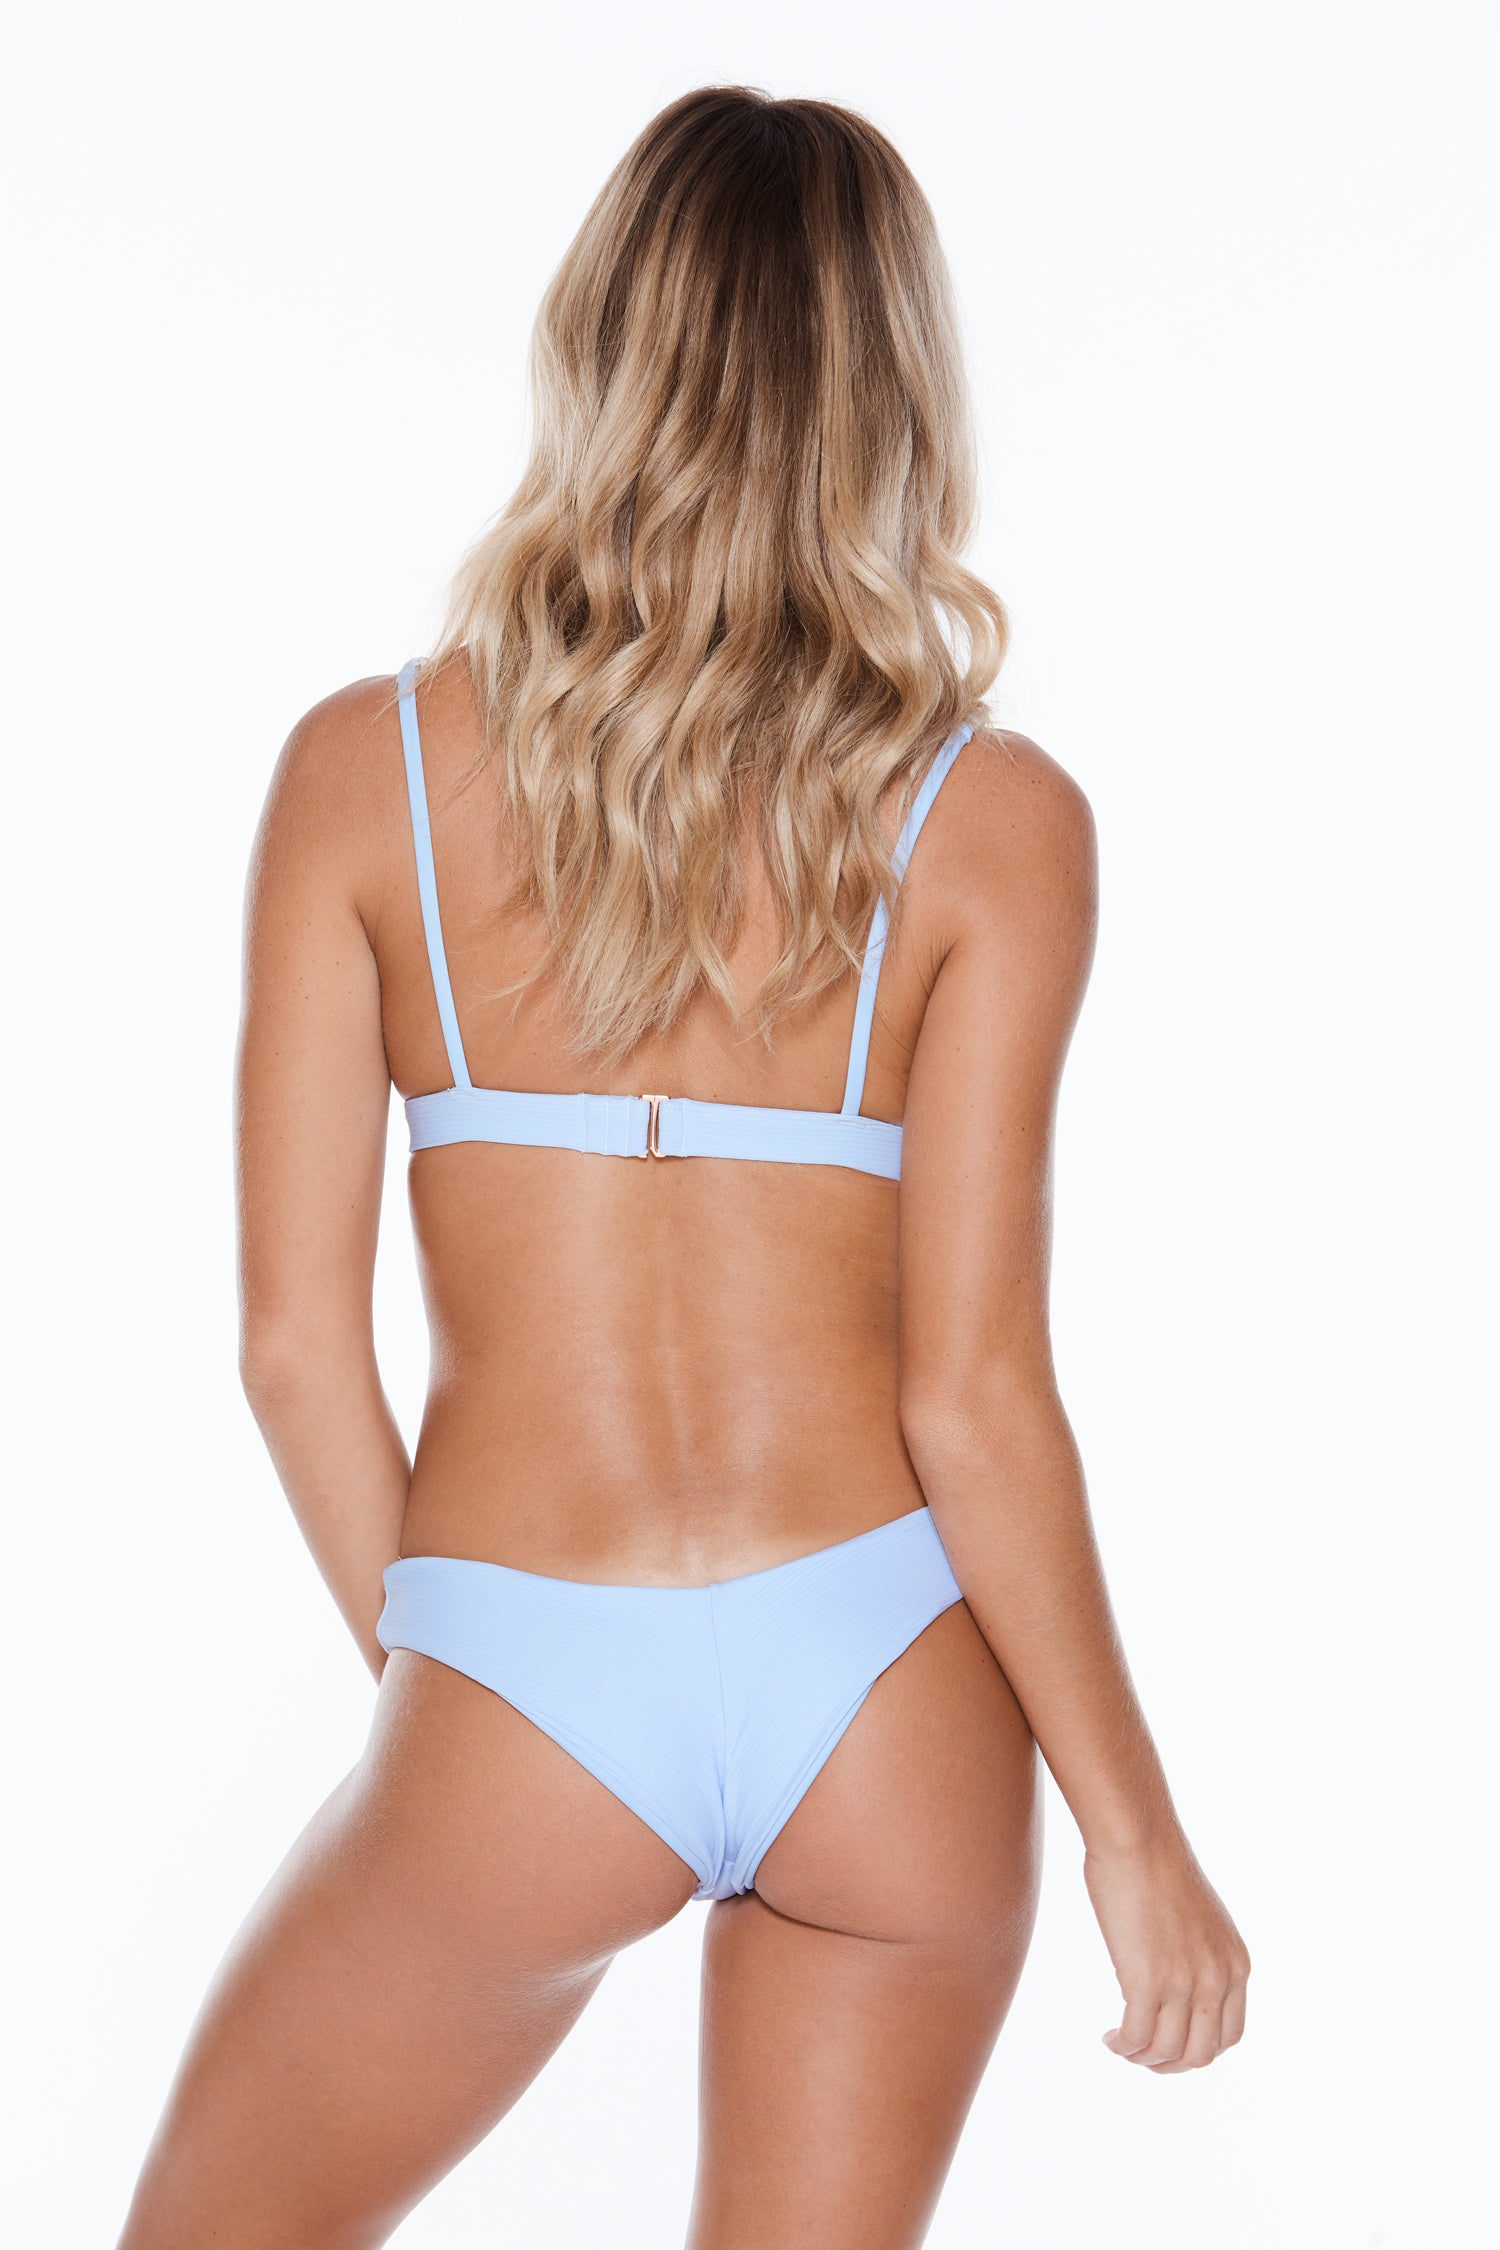 Knotty Top - Blue Heaven Rib